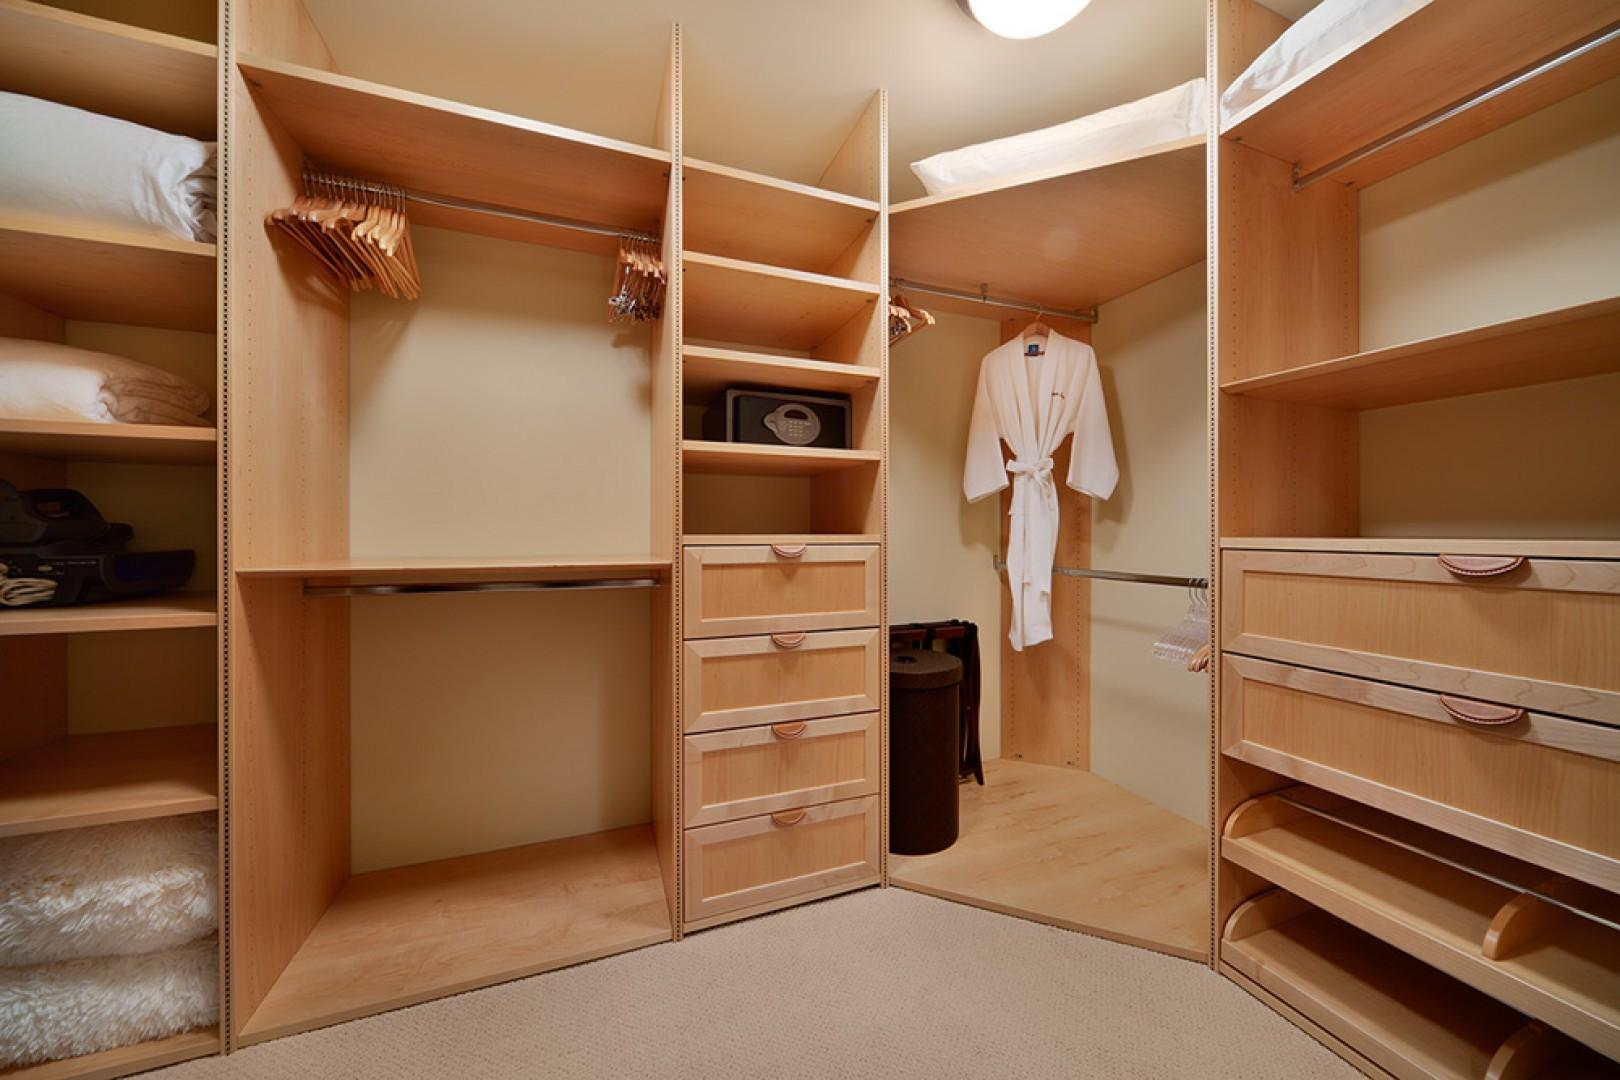 L509 Sandcastles Suite Master Bedroom Large Walk-in Closet with Custom Crafted Storage Compartments